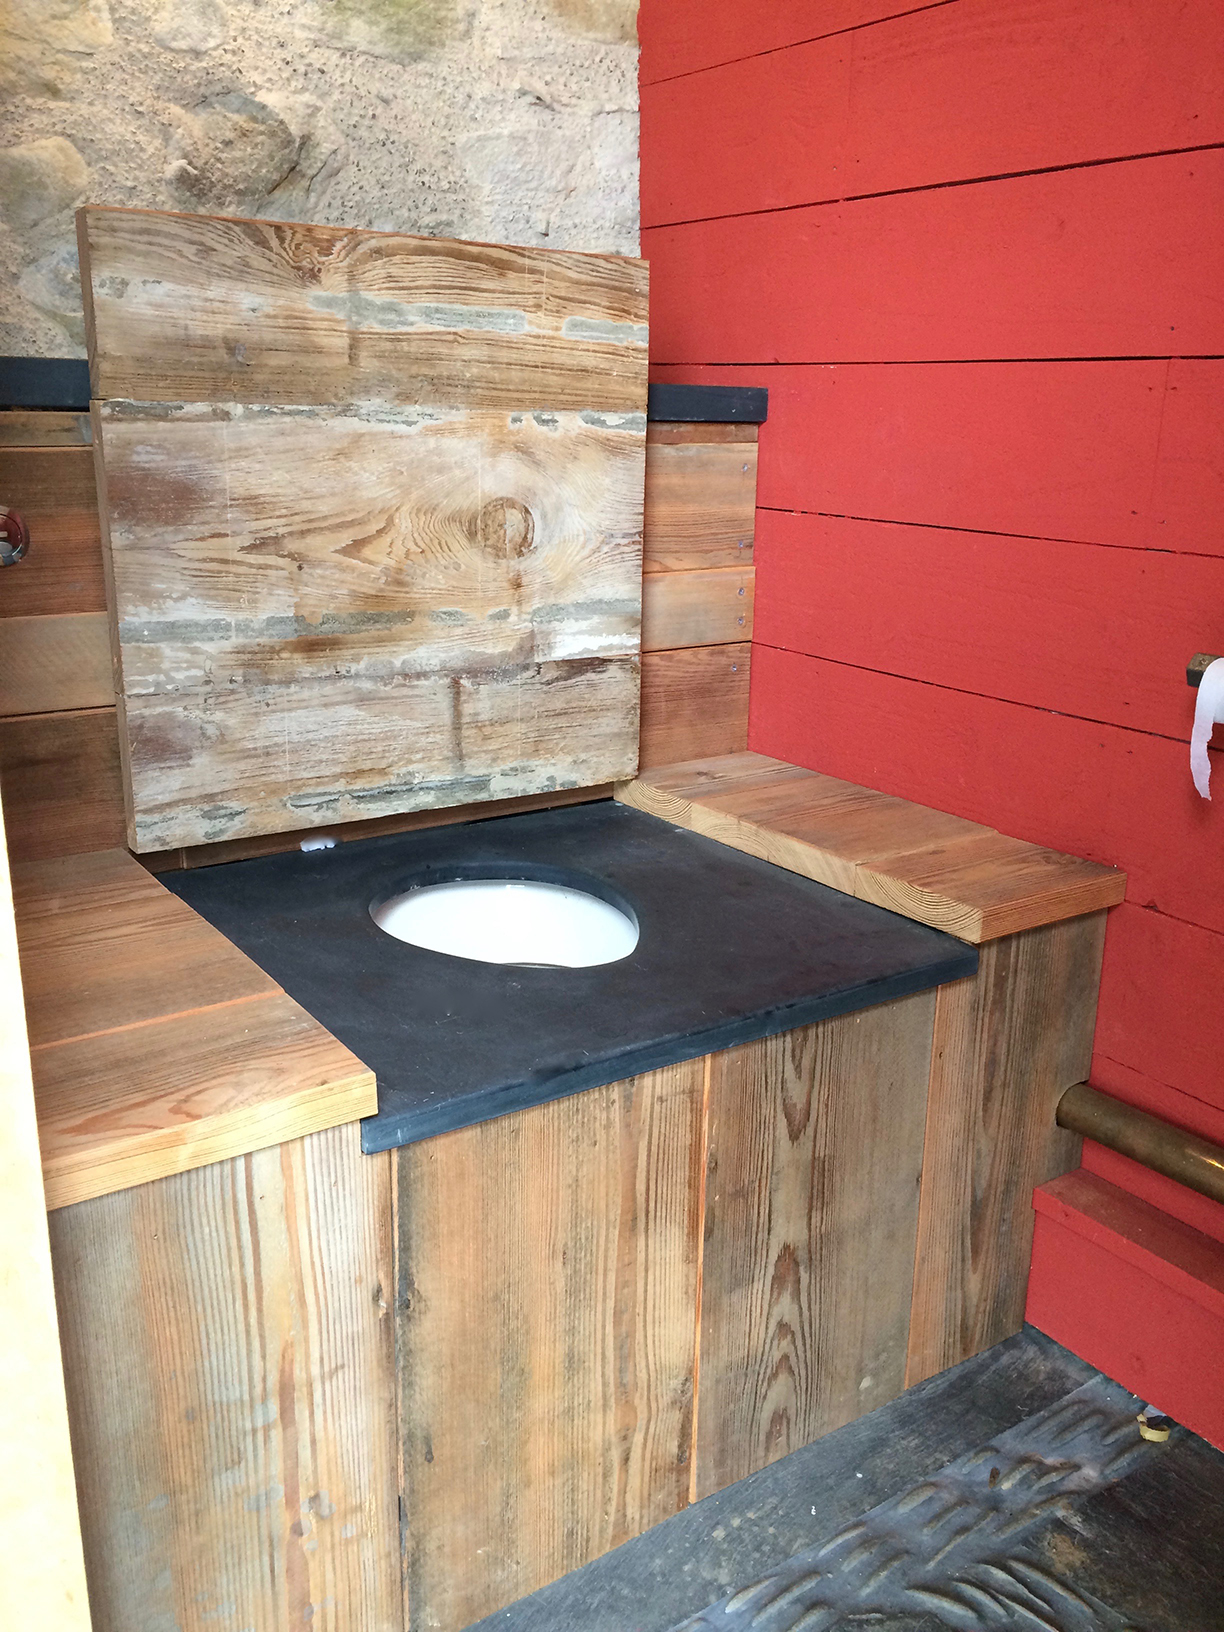 Polished Welsh slate seat for outside toilet